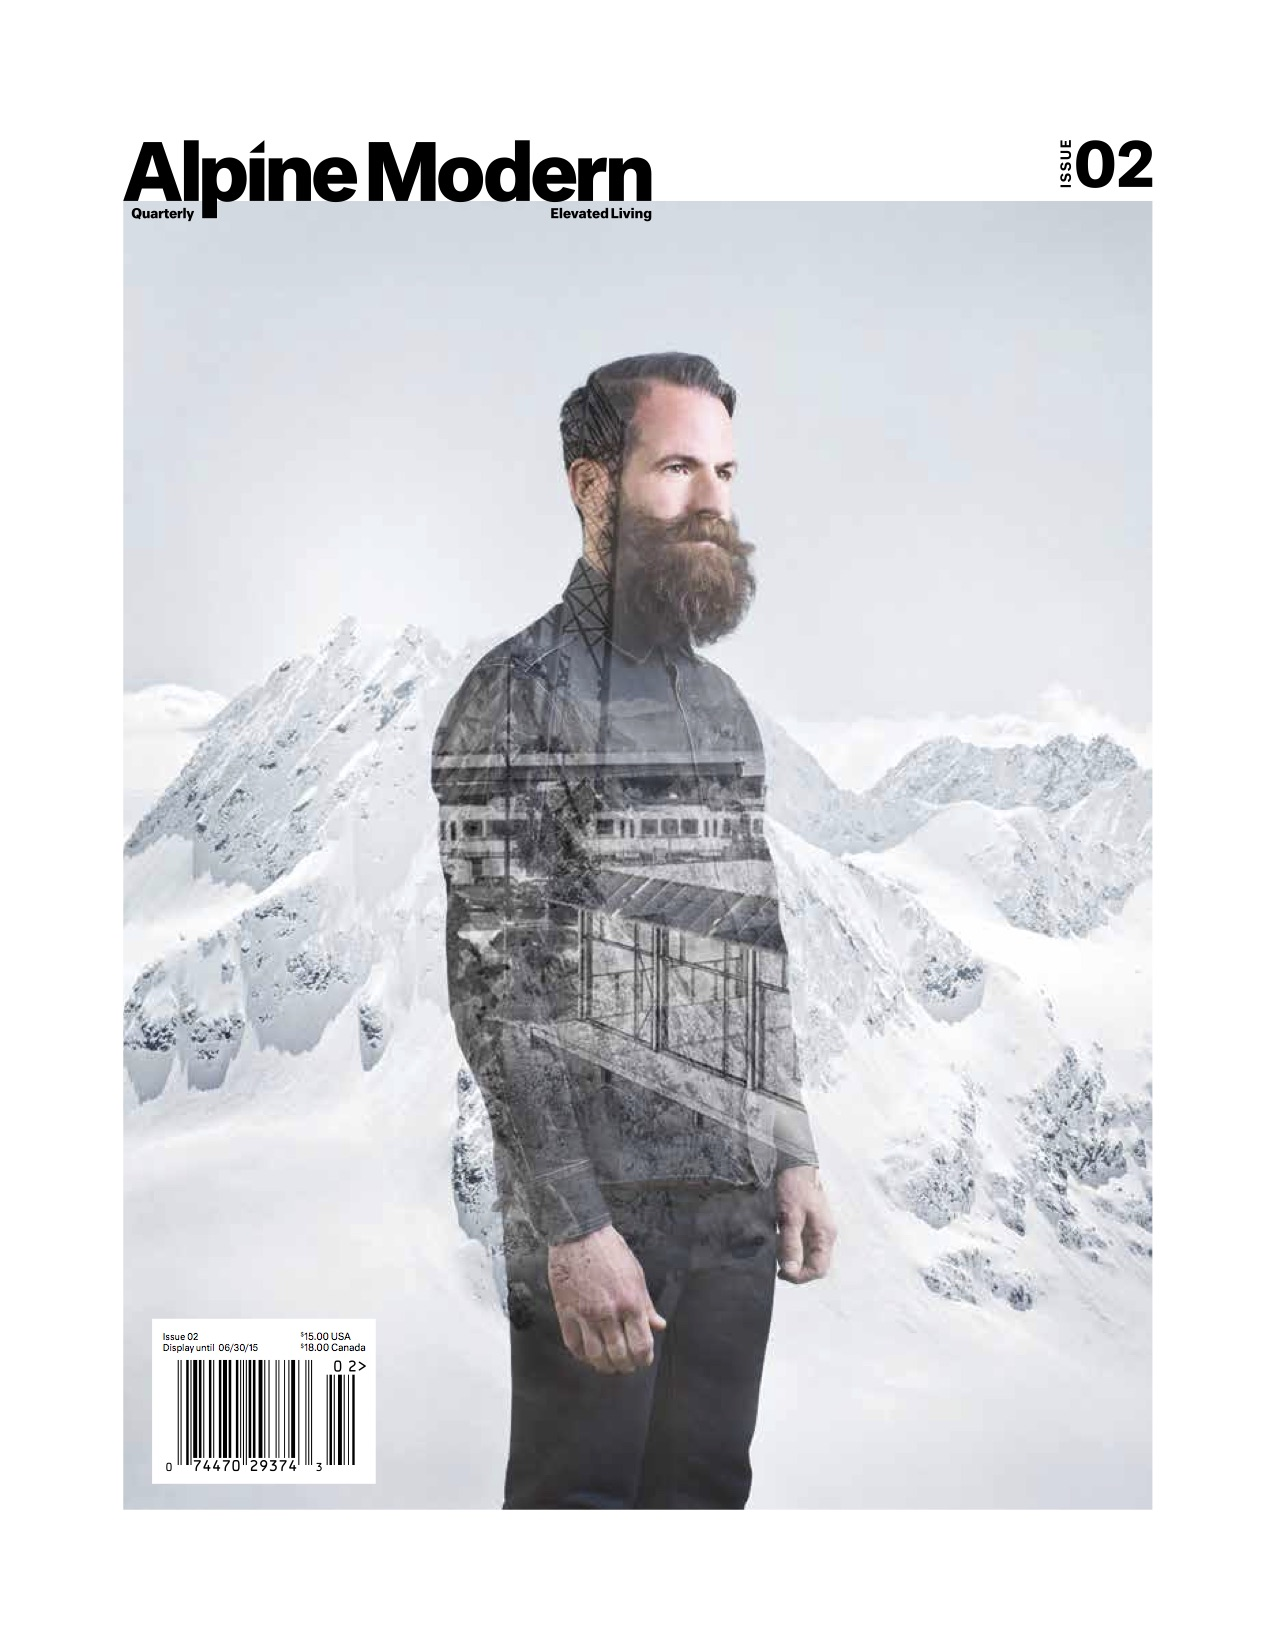 alpinemodern-issue02.jpg